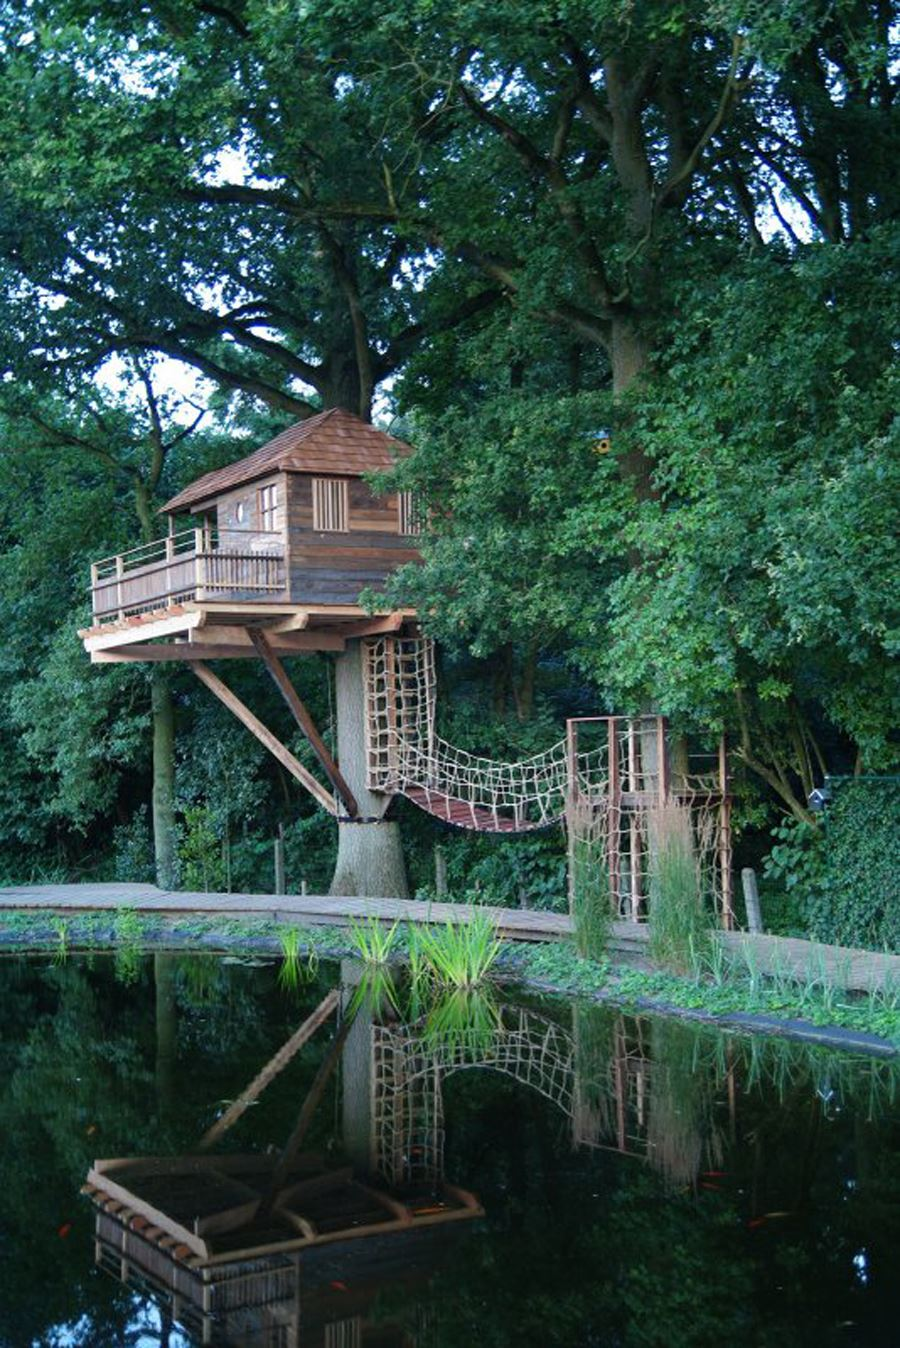 Please note that the tree you chose for the tree house is a living structure